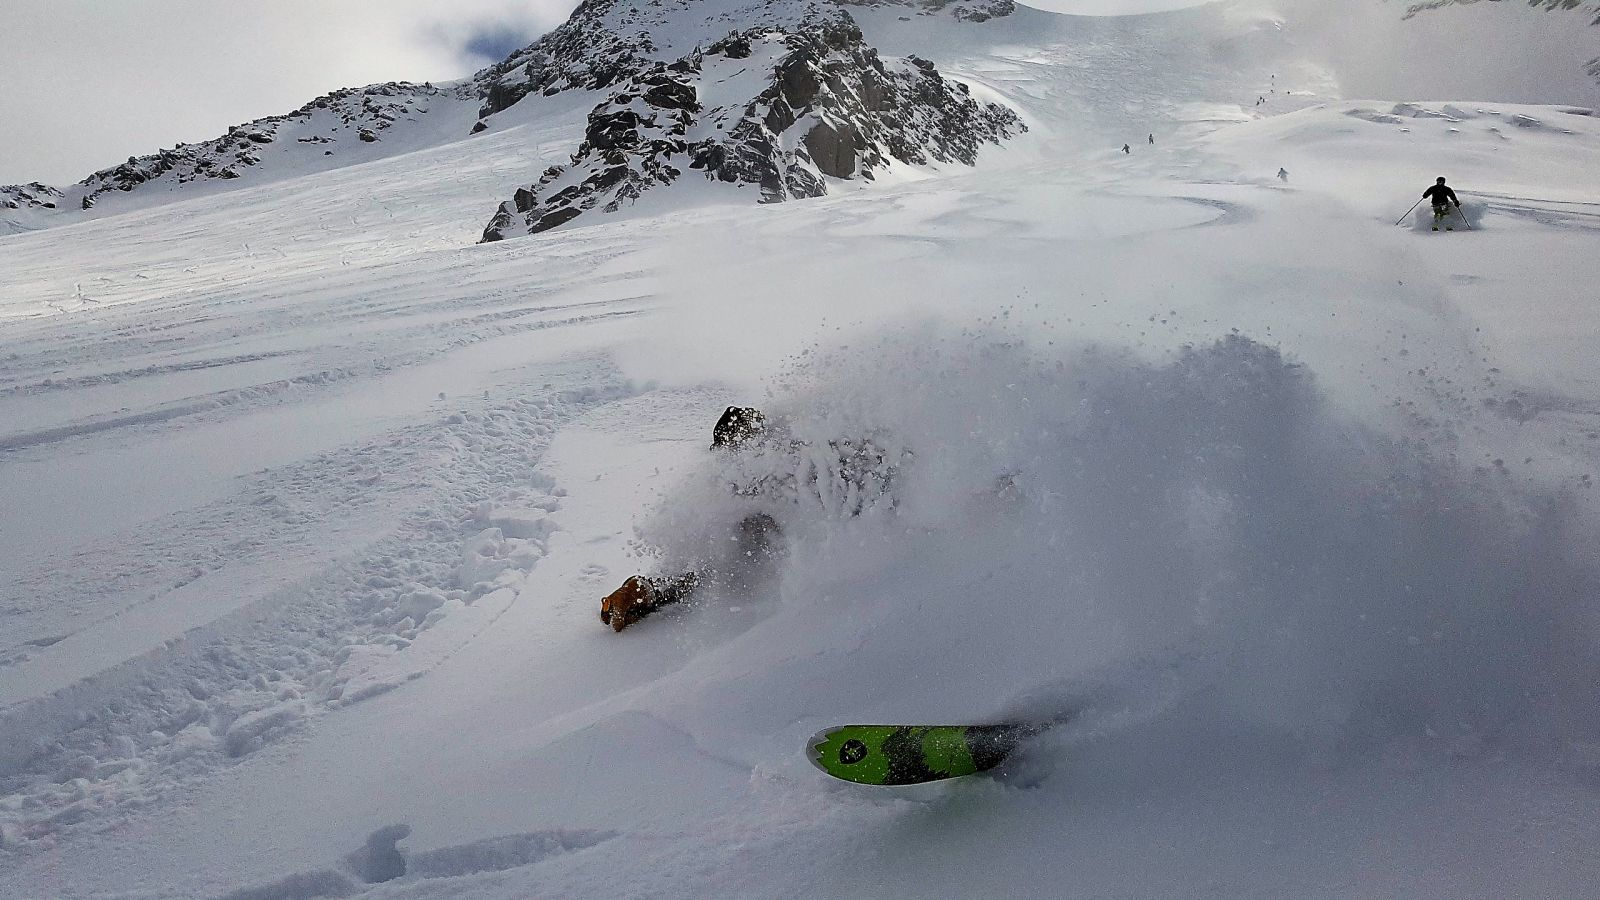 grands montets powder snow